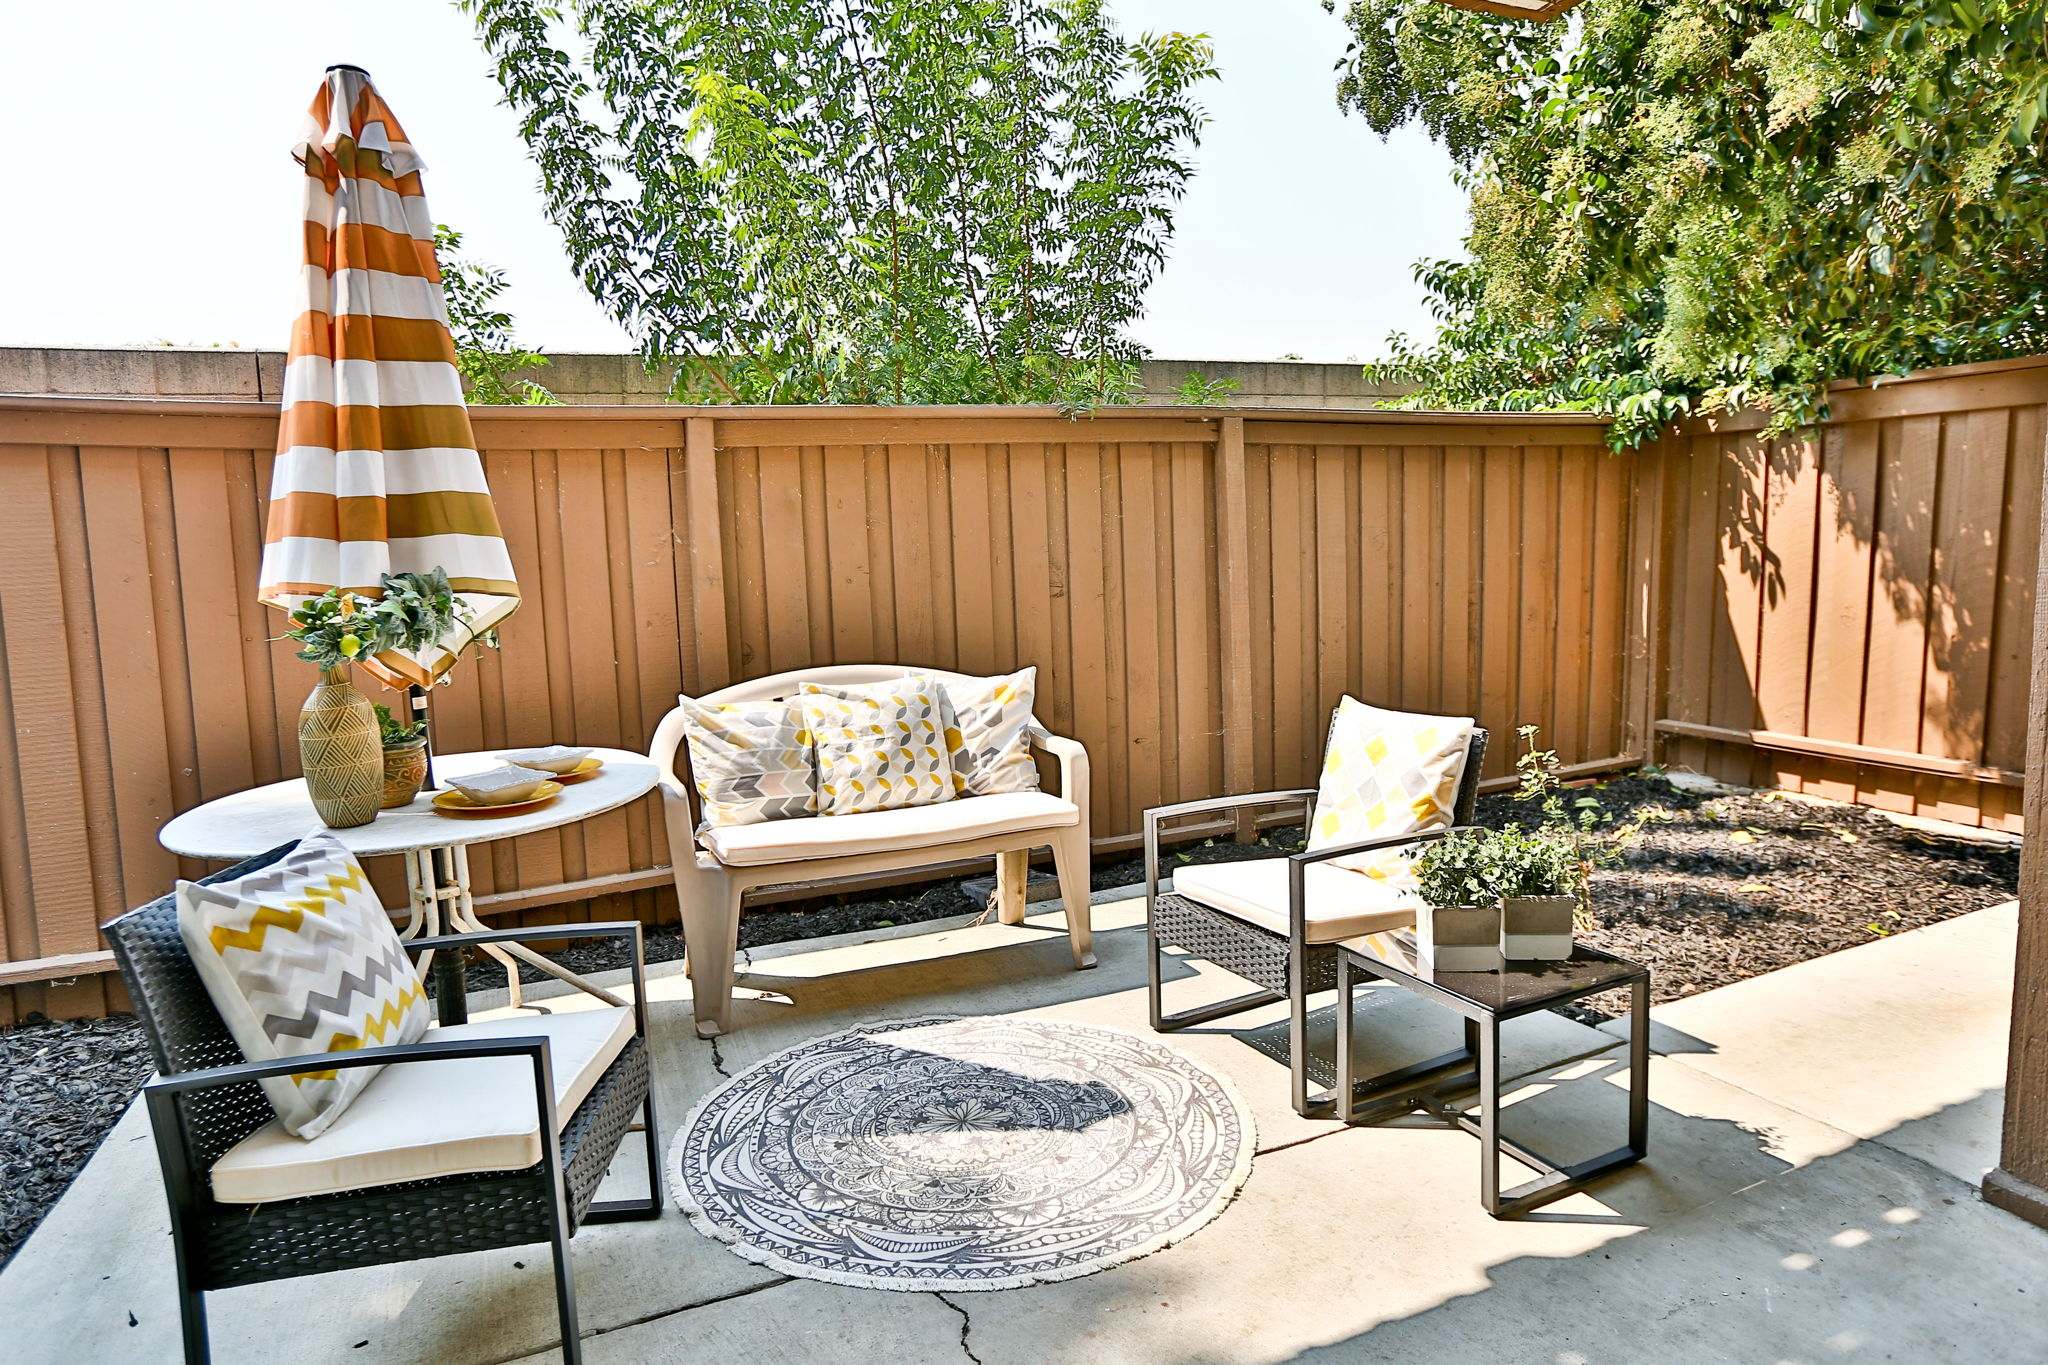 Spacious patio with room for small garden